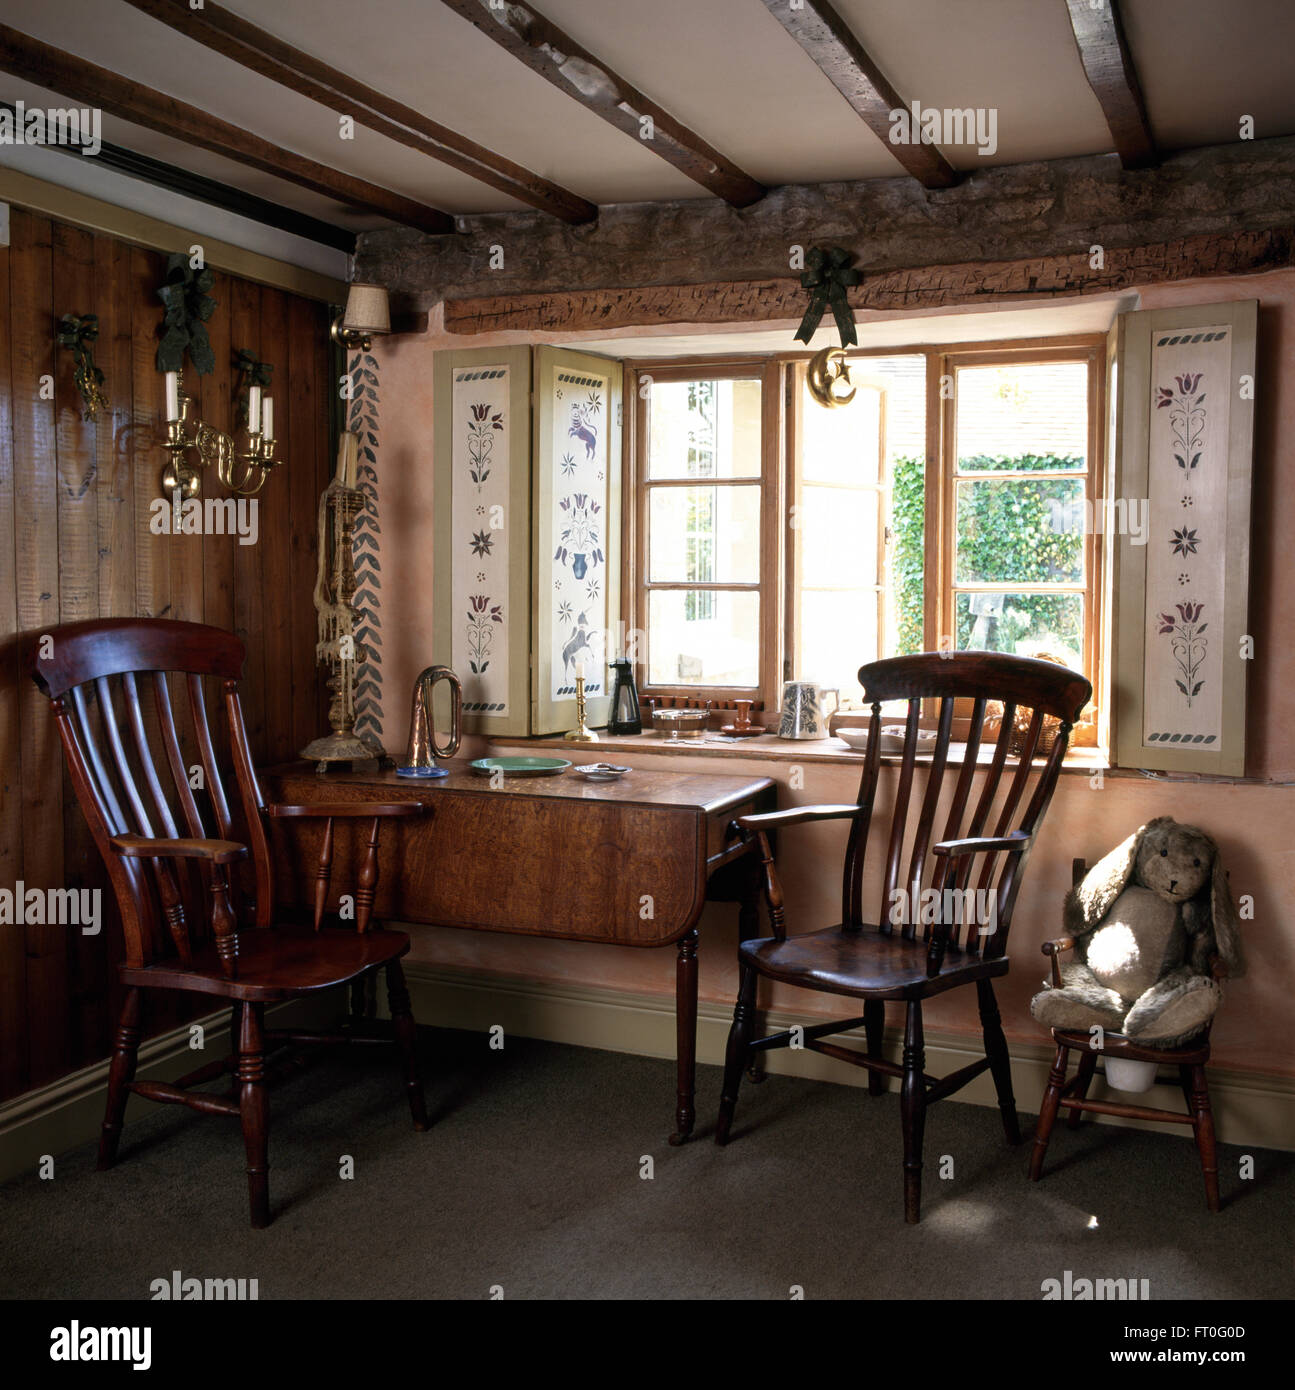 Antique Windsor Chairs And Old Table Below Window With